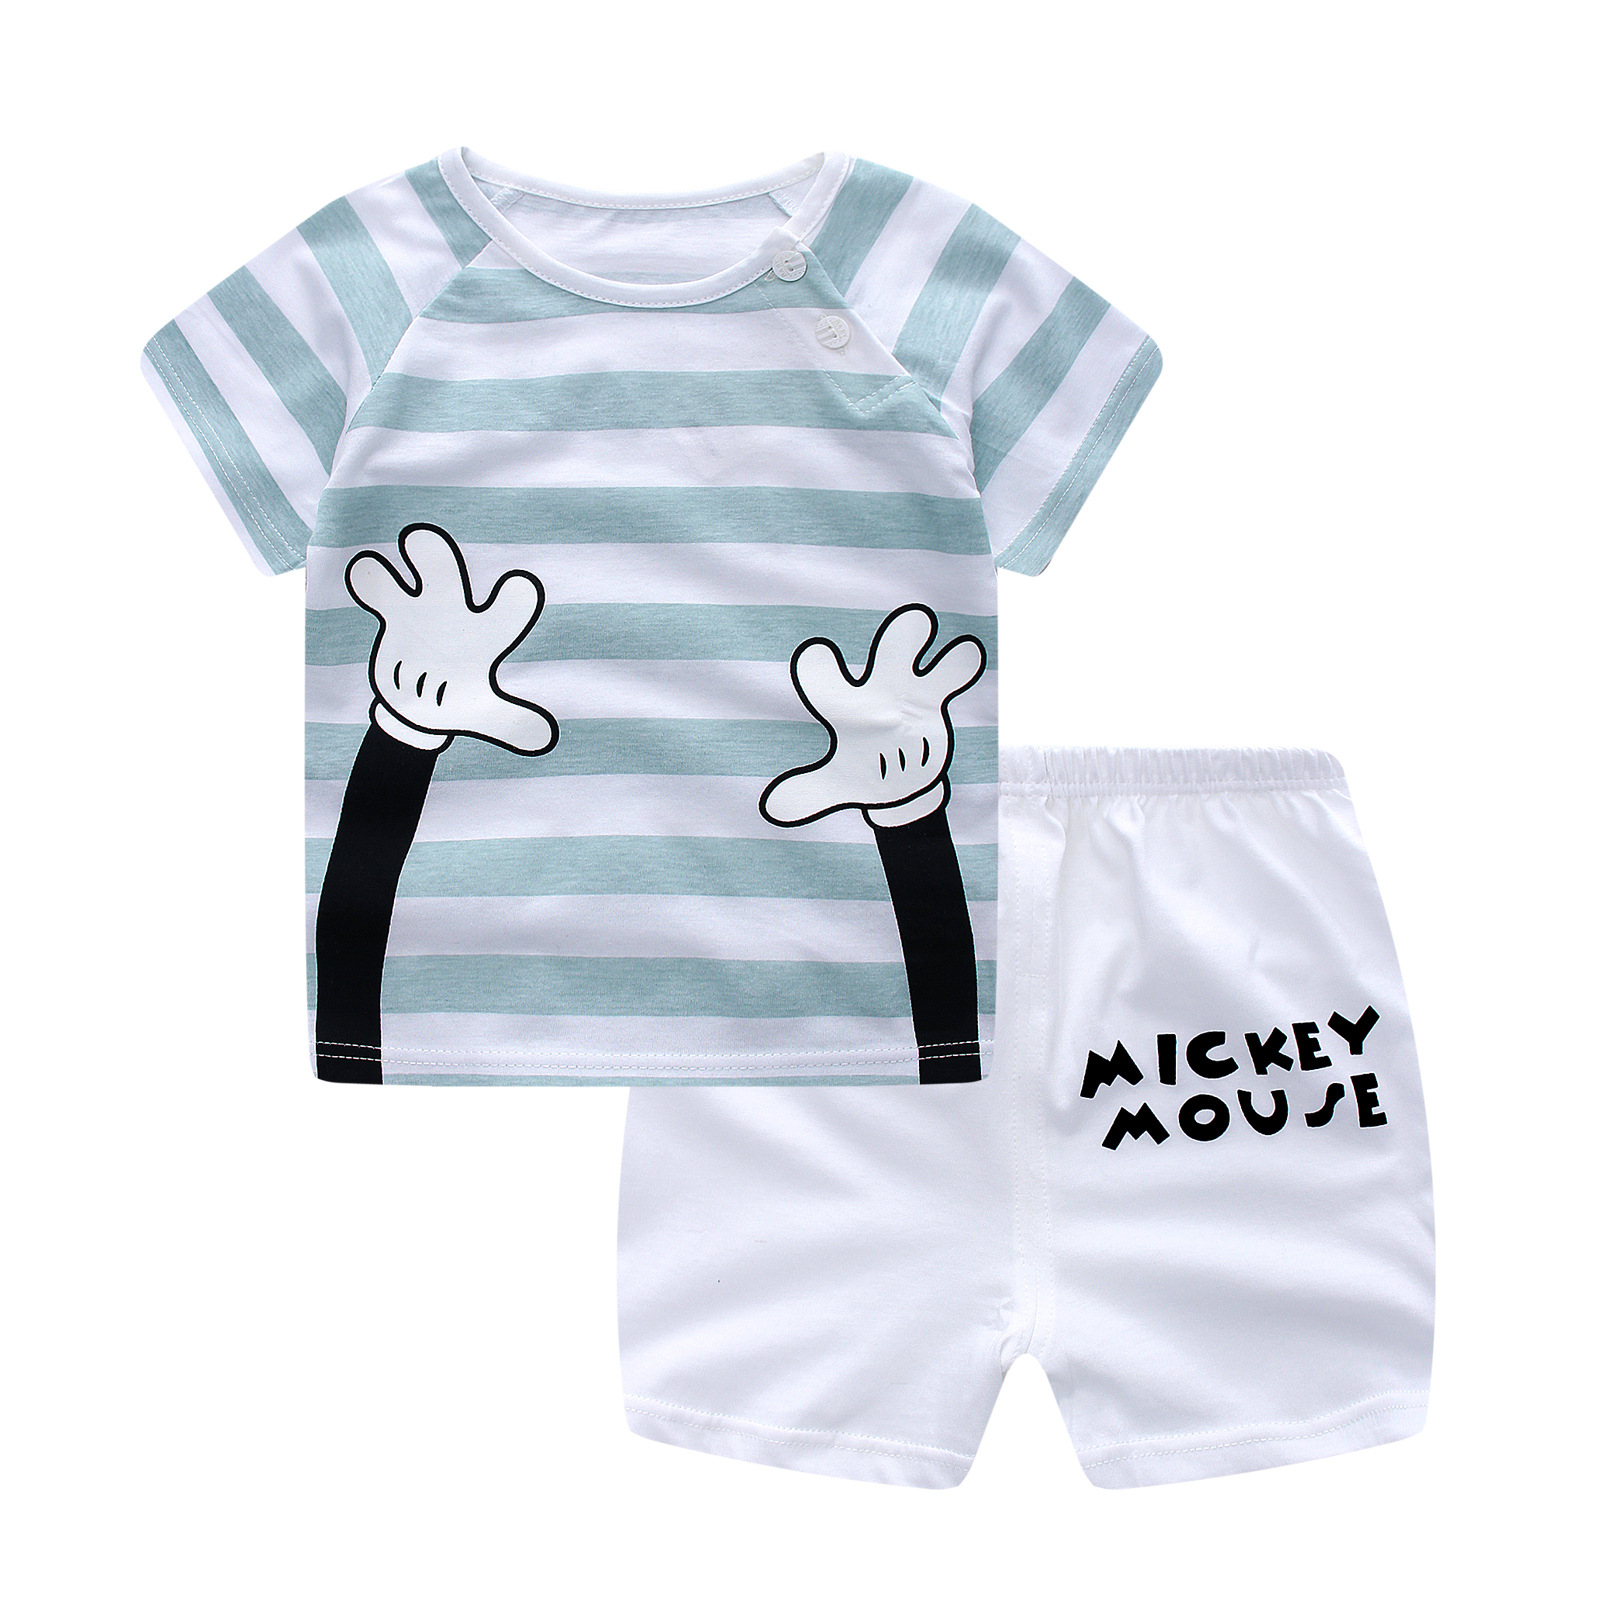 2pcs set Baby Boy Clothes Summer 2018 cotton Short sleeve Newborn Baby Boys Clothes Set Cartoon Baby Clothing Suit (Shirt+Pants) baby boy clothes monkey cotton t shirt plaid outwear casual pants newborn boy clothes baby clothing set